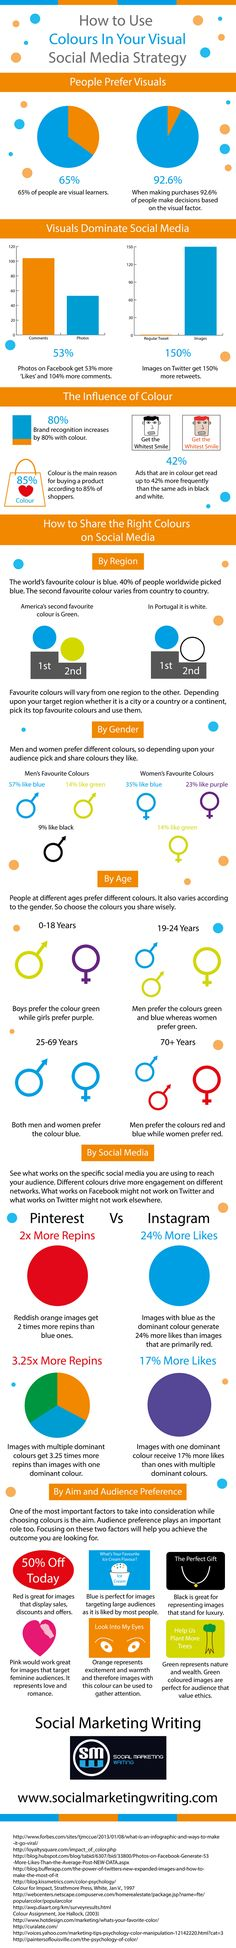 How to Use Colours in Your Visual Social Media Strategy [Infographic]